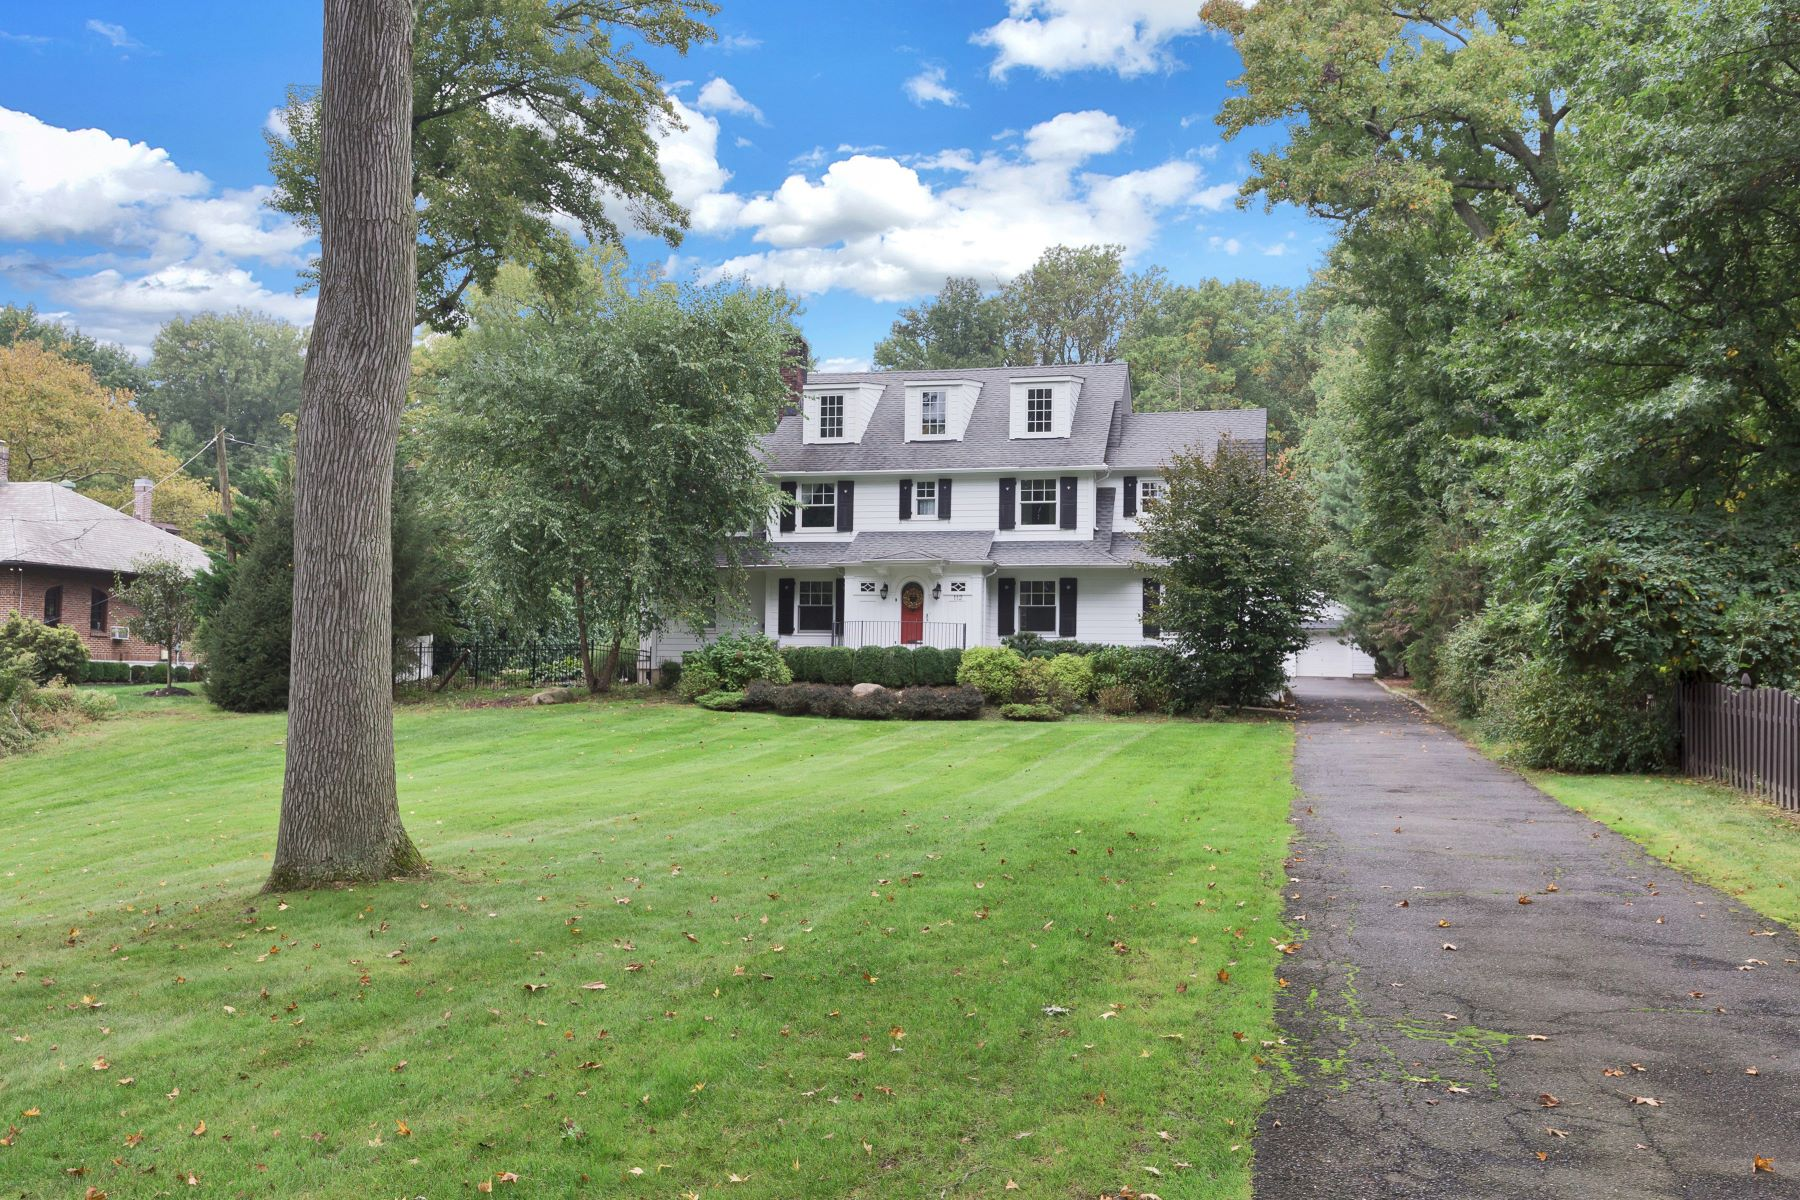 Single Family Homes for Sale at Live Boundless 112 Brightwood Ave Westfield, New Jersey 07090 United States